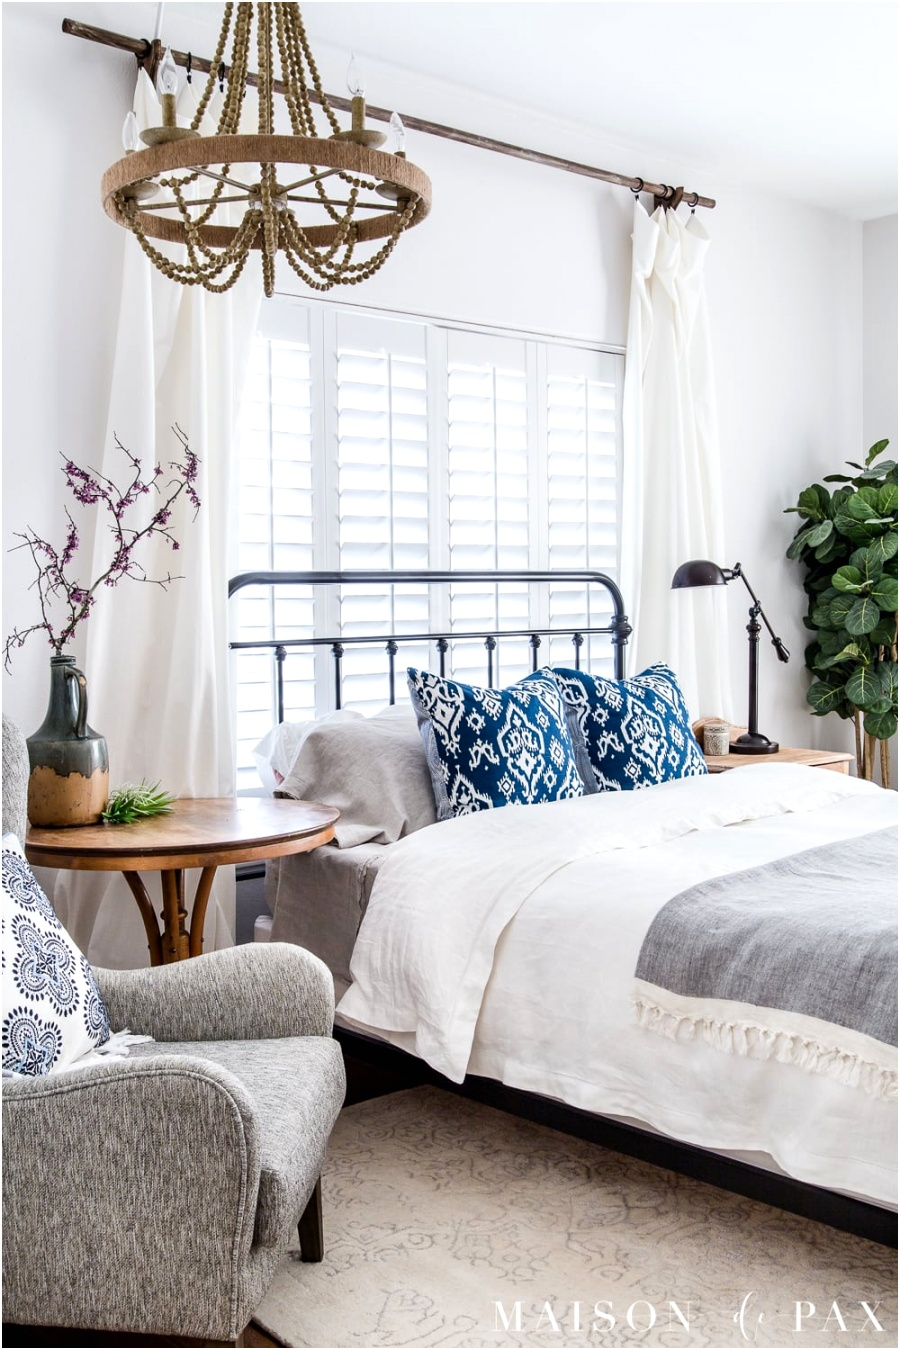 White modern farmhouse master bedroom decorated for spring 4